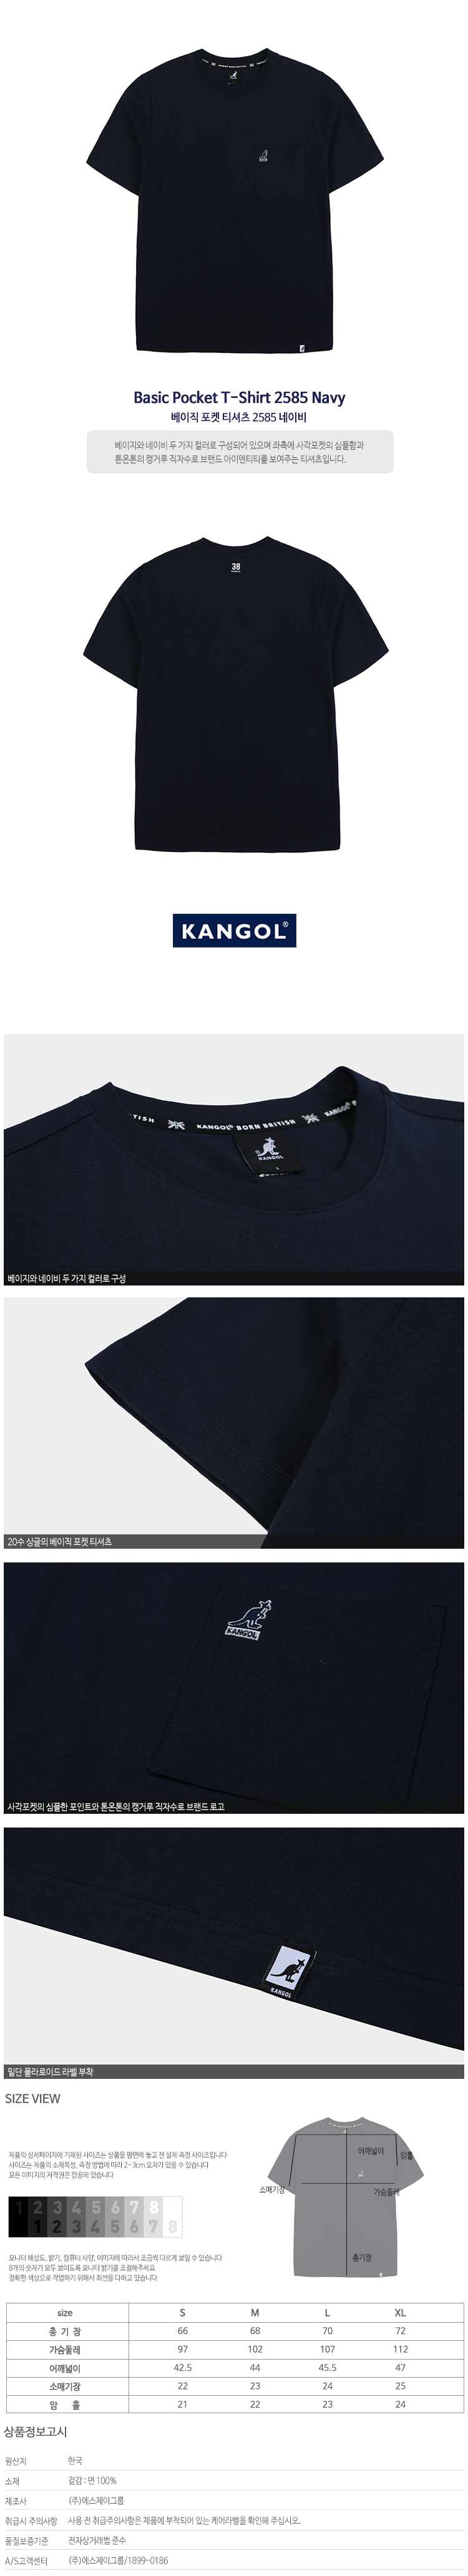 Basic Pocket T-Shirt 2585 NAVY